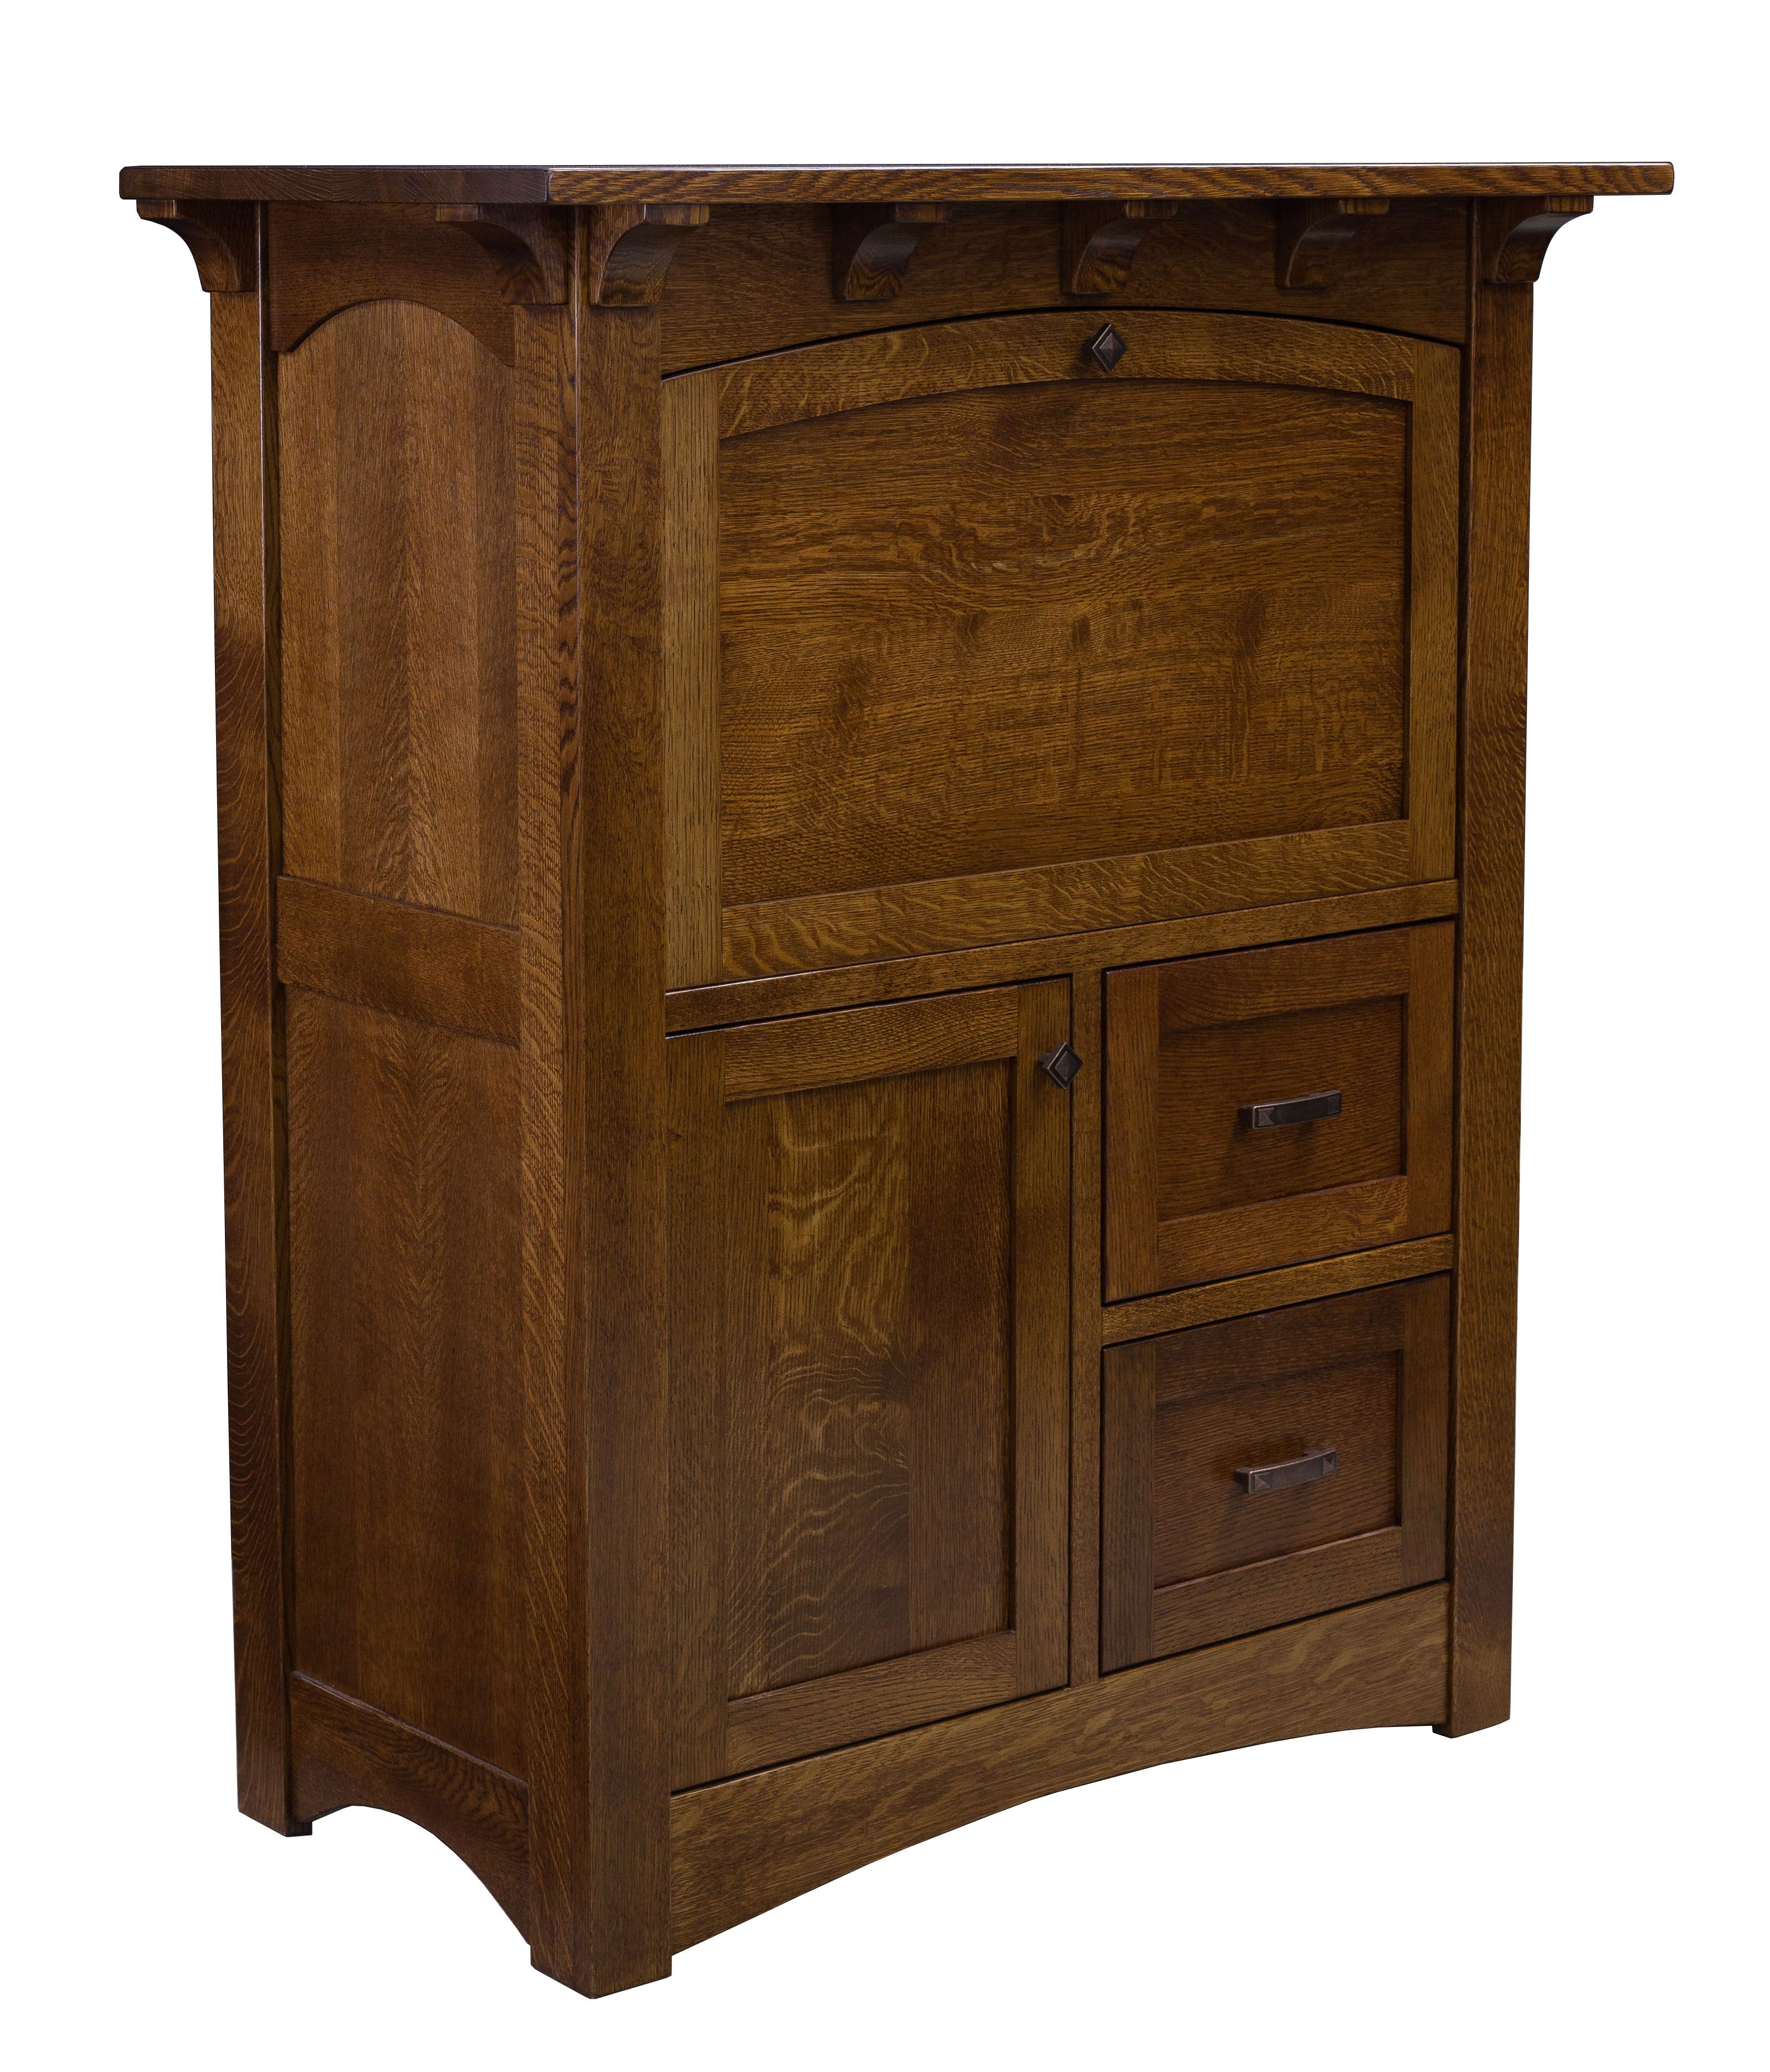 red style desk products also collection transitional coaster features drawers wood secretary brown ii drawer finish a and built pinterest this file with pin writing